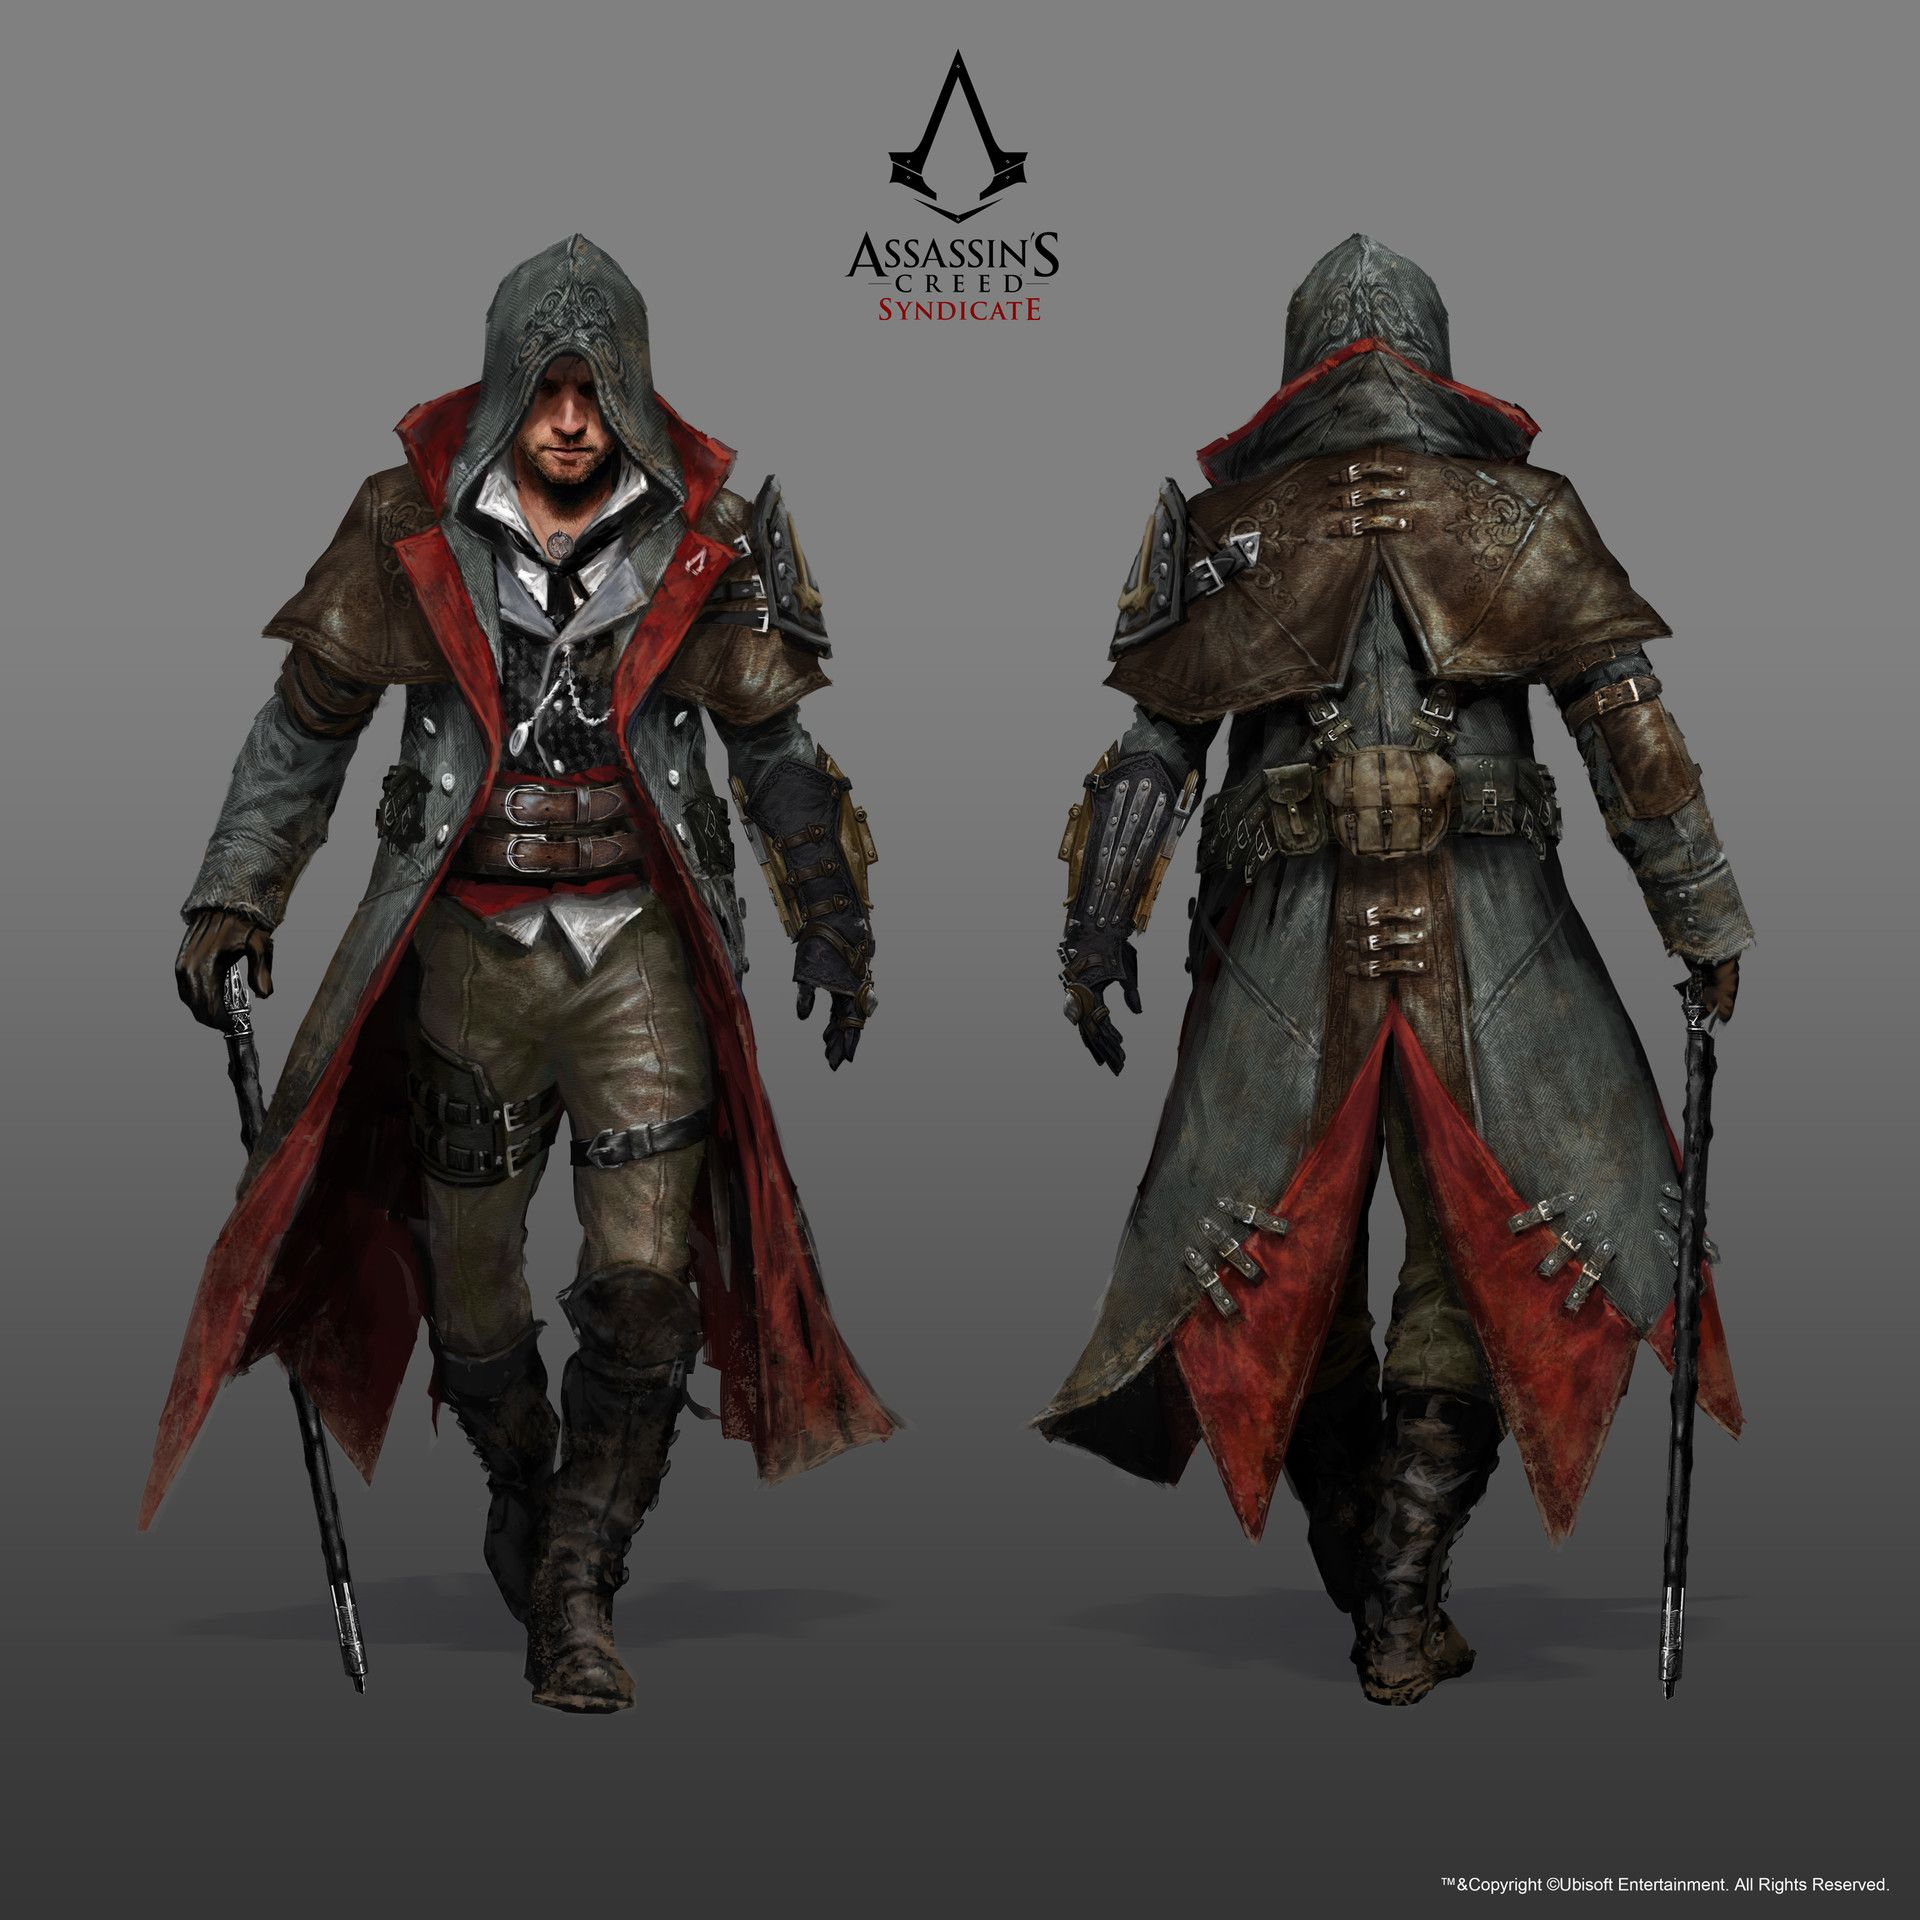 Assassin's Creed Valhalla video game listing goes live for